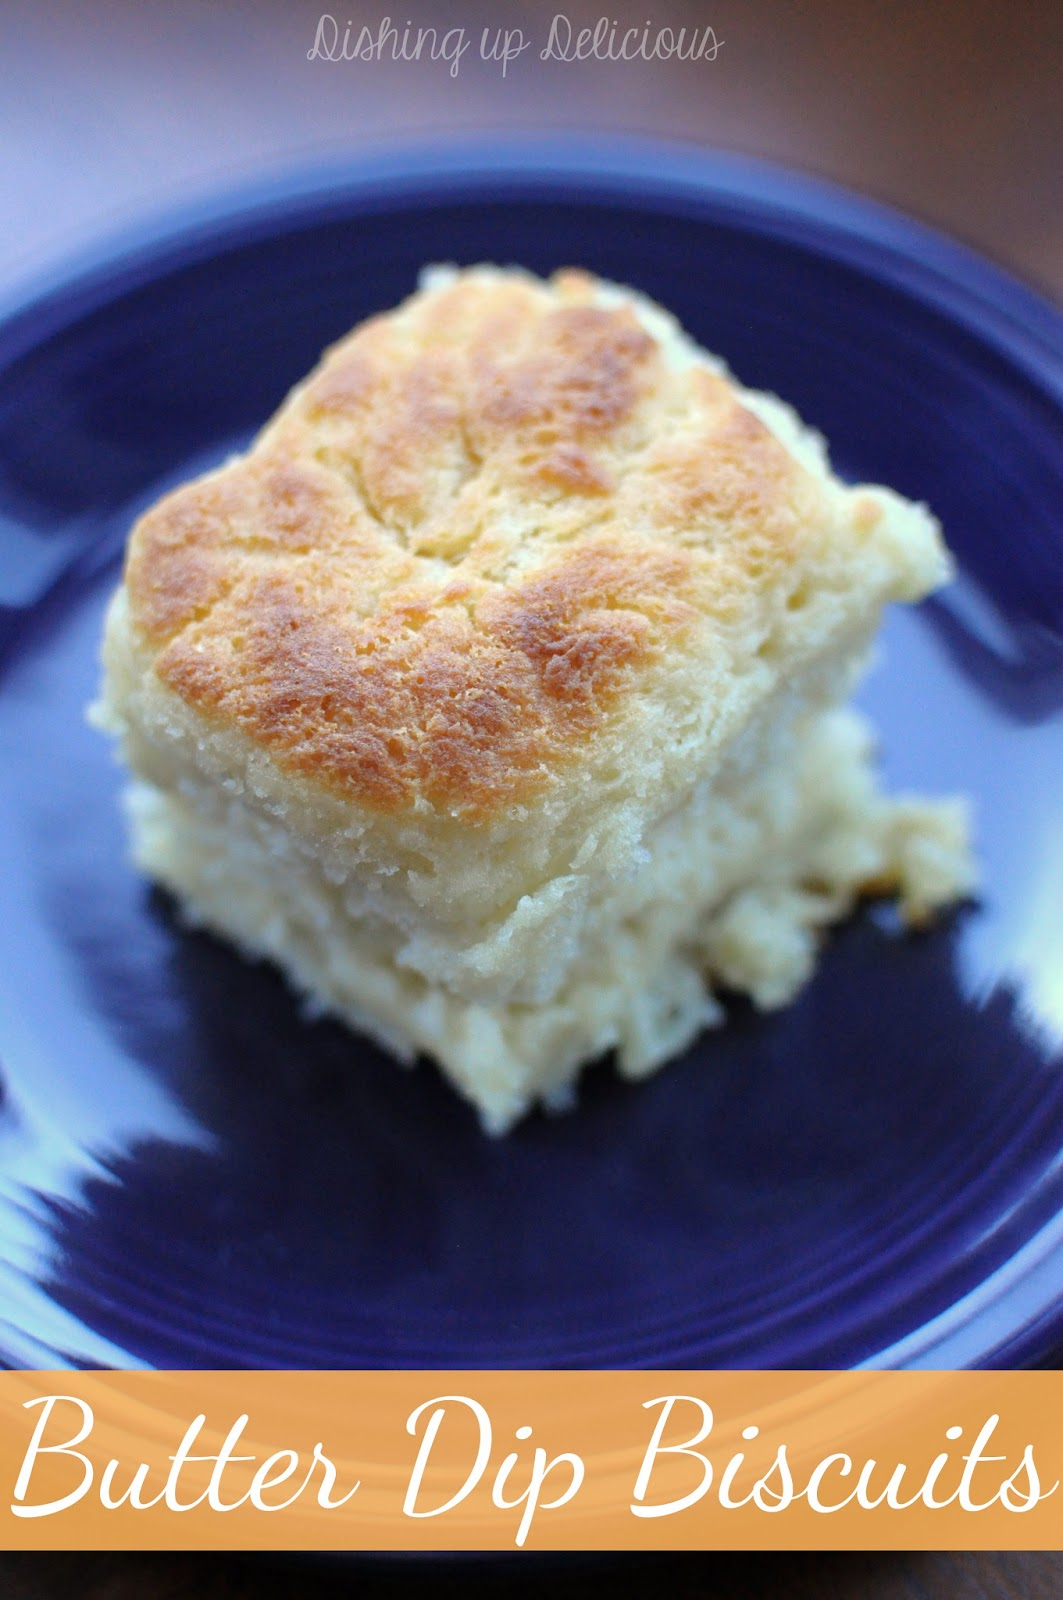 Dishing up Delicious: Butter Dip Biscuits